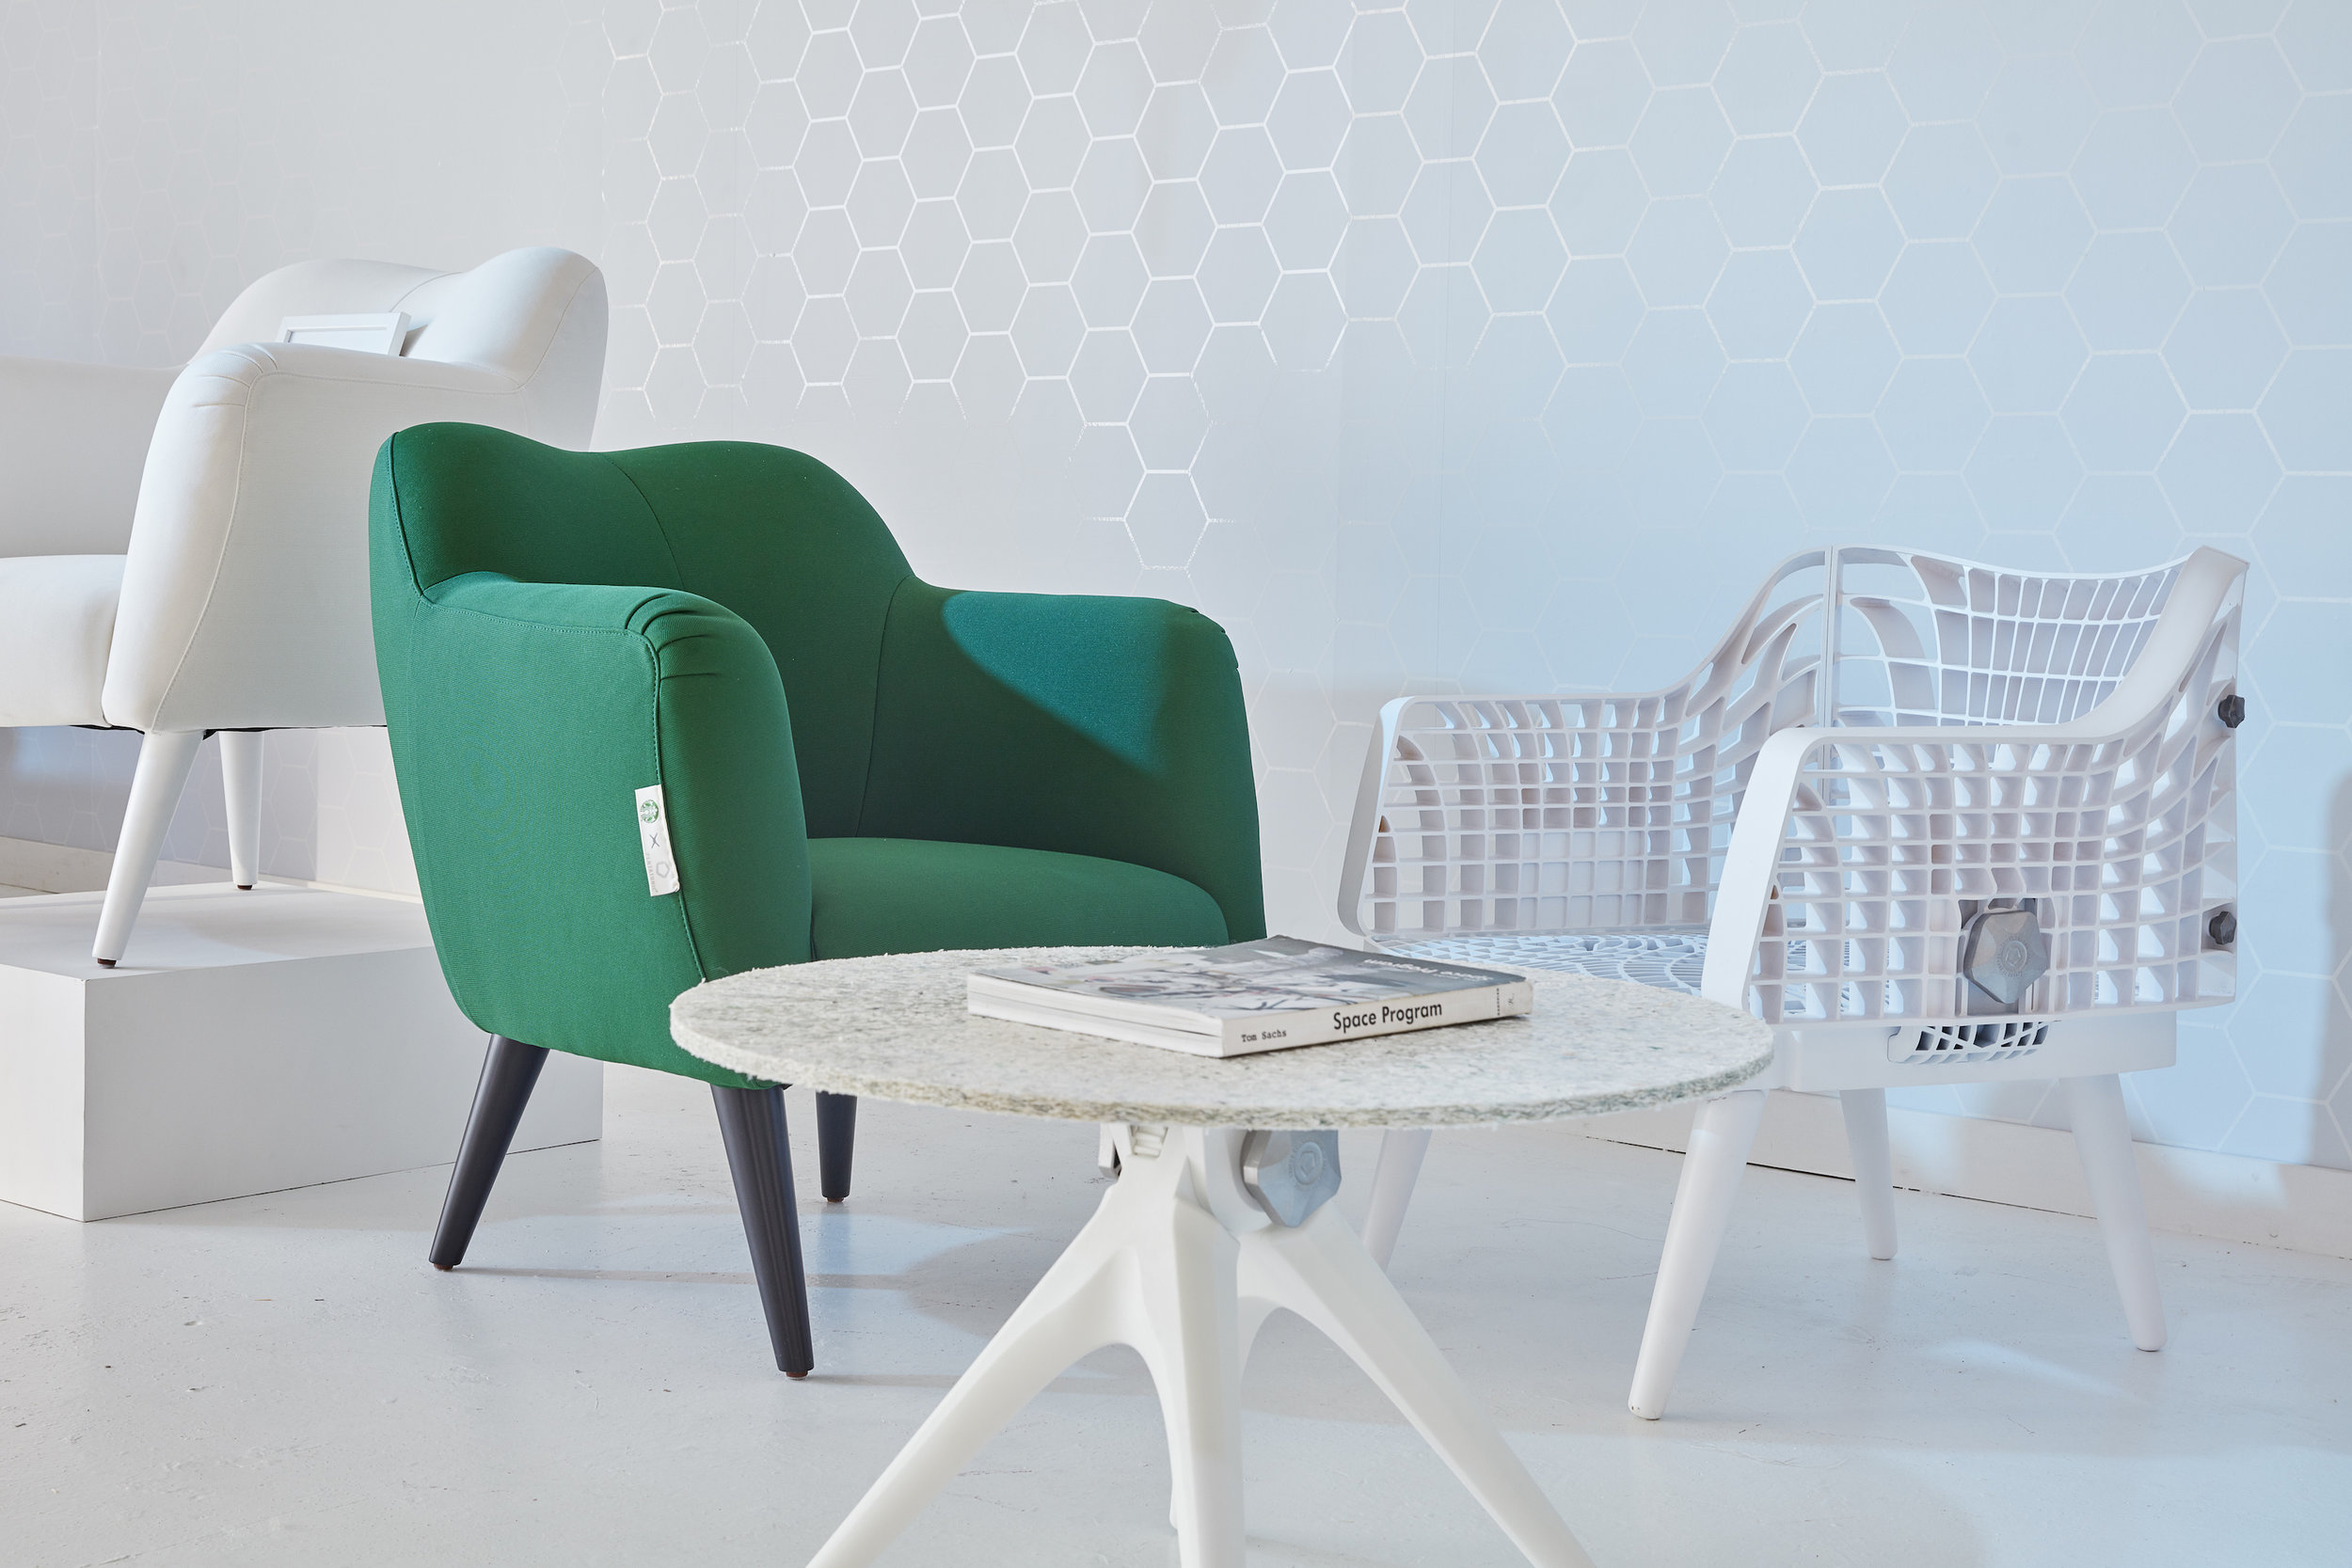 The recycled Starbucks bean chair redesign. Image courtesy of Pentatonic